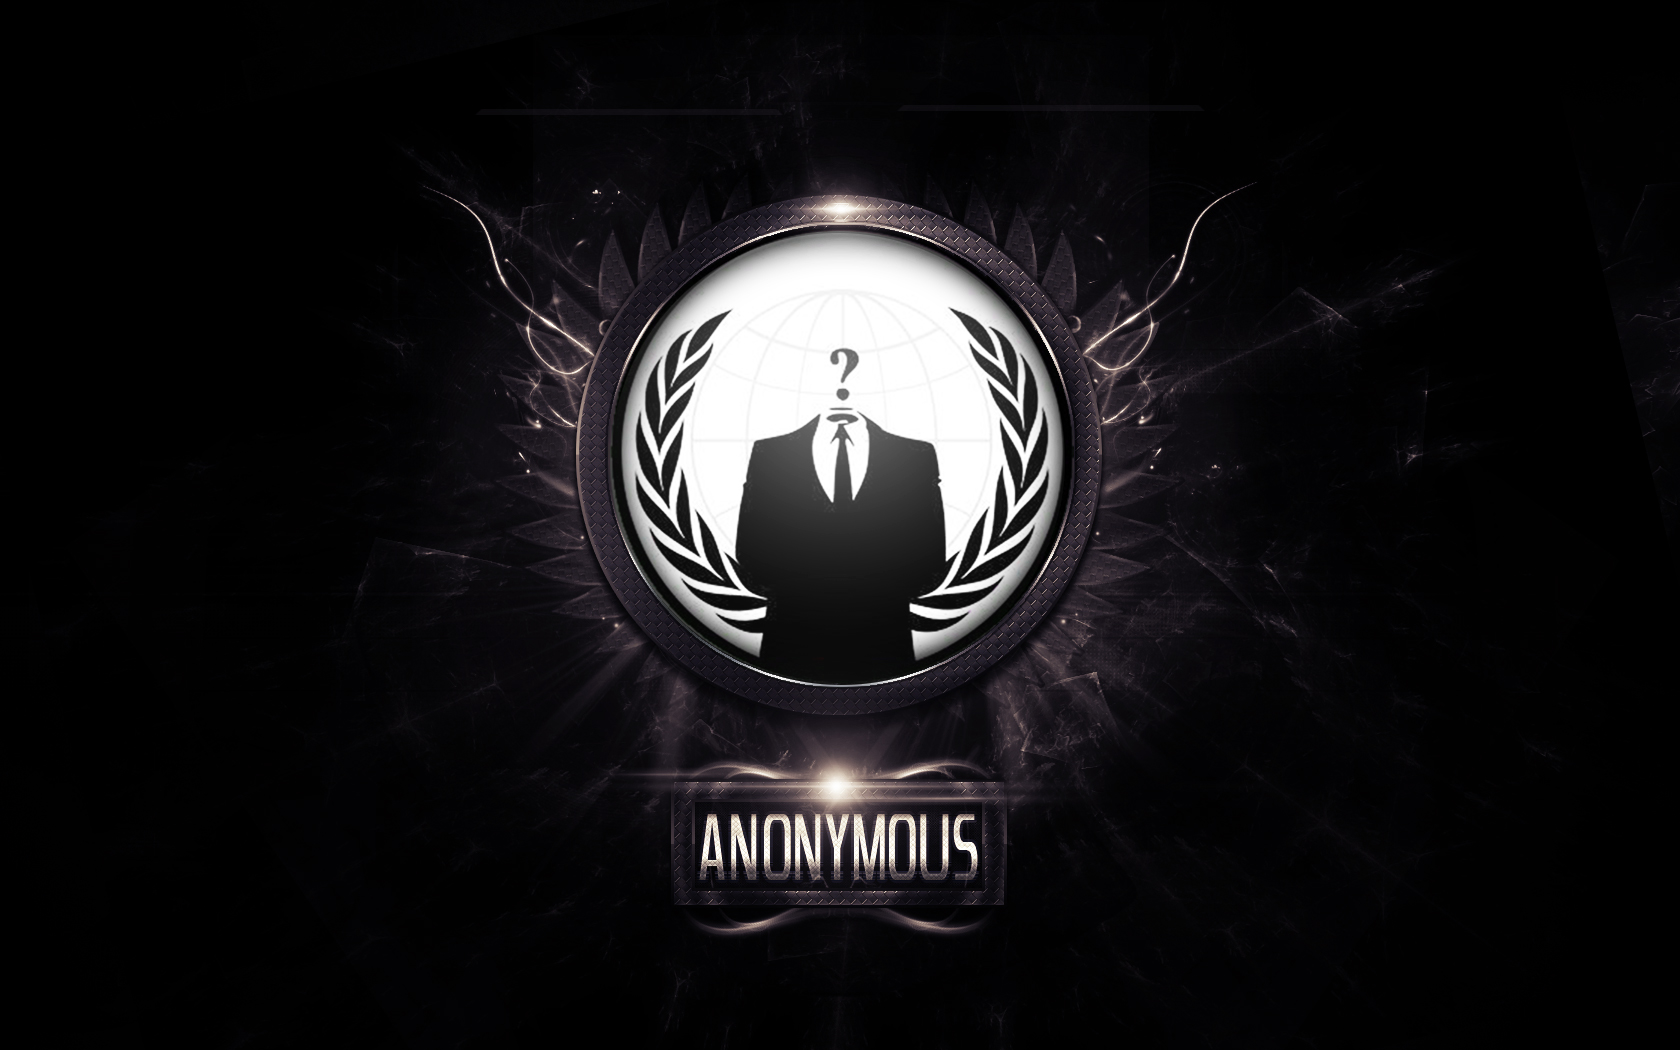 Anonymous HD Masa252st252 Resimleri Hd Wallpapers 1680x1050